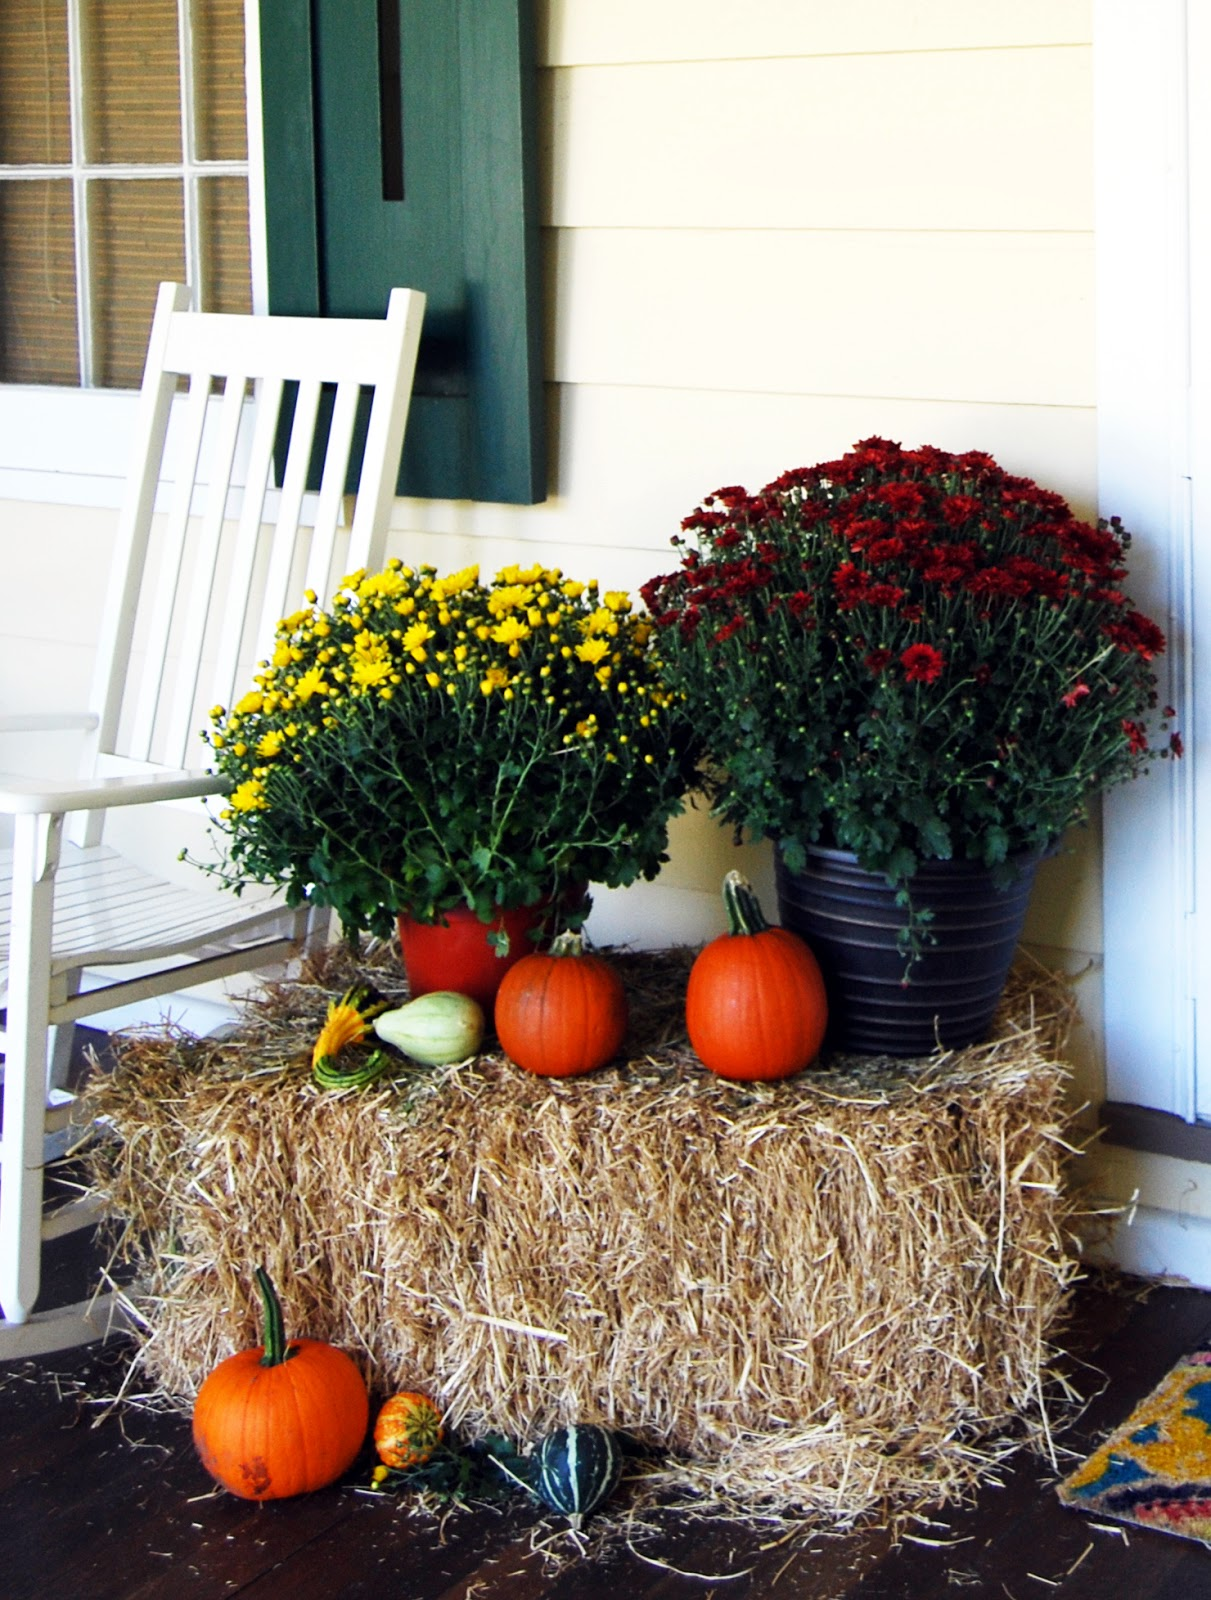 Art blog for the inspiration place fall decorating ideas for Pictures of fall decorations for outdoors